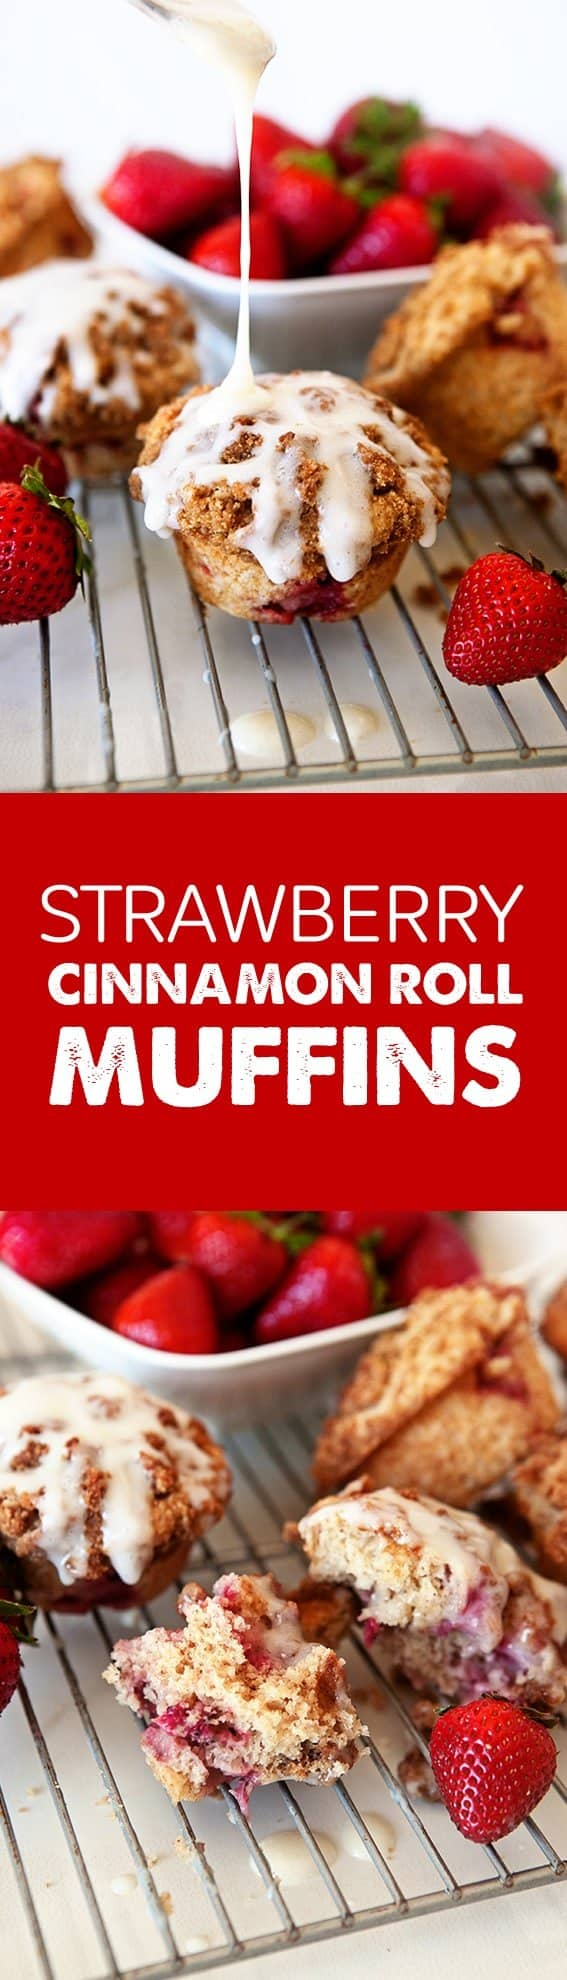 Strawberry Cinnamon Roll Muffins will make your Spring breakfast complete. Your morning couldn't get any better!